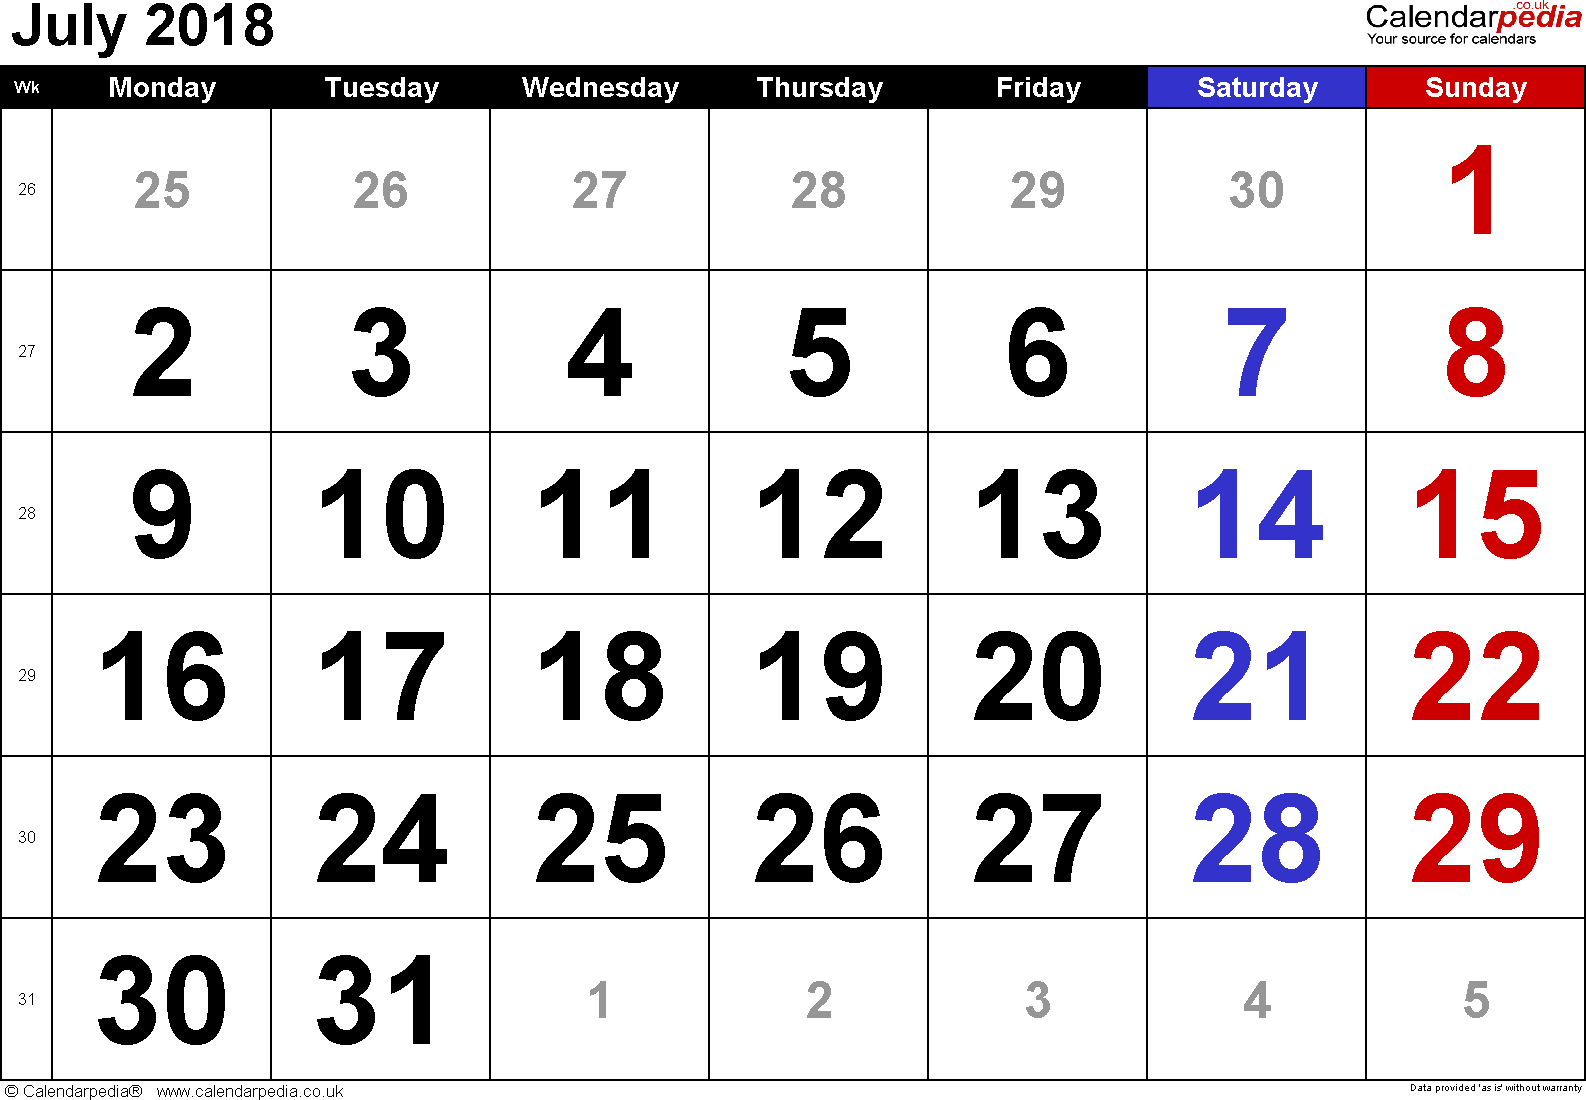 Calendar July 2018, landscape orientation, large numerals, 1 page, with UK bank holidays and week numbers